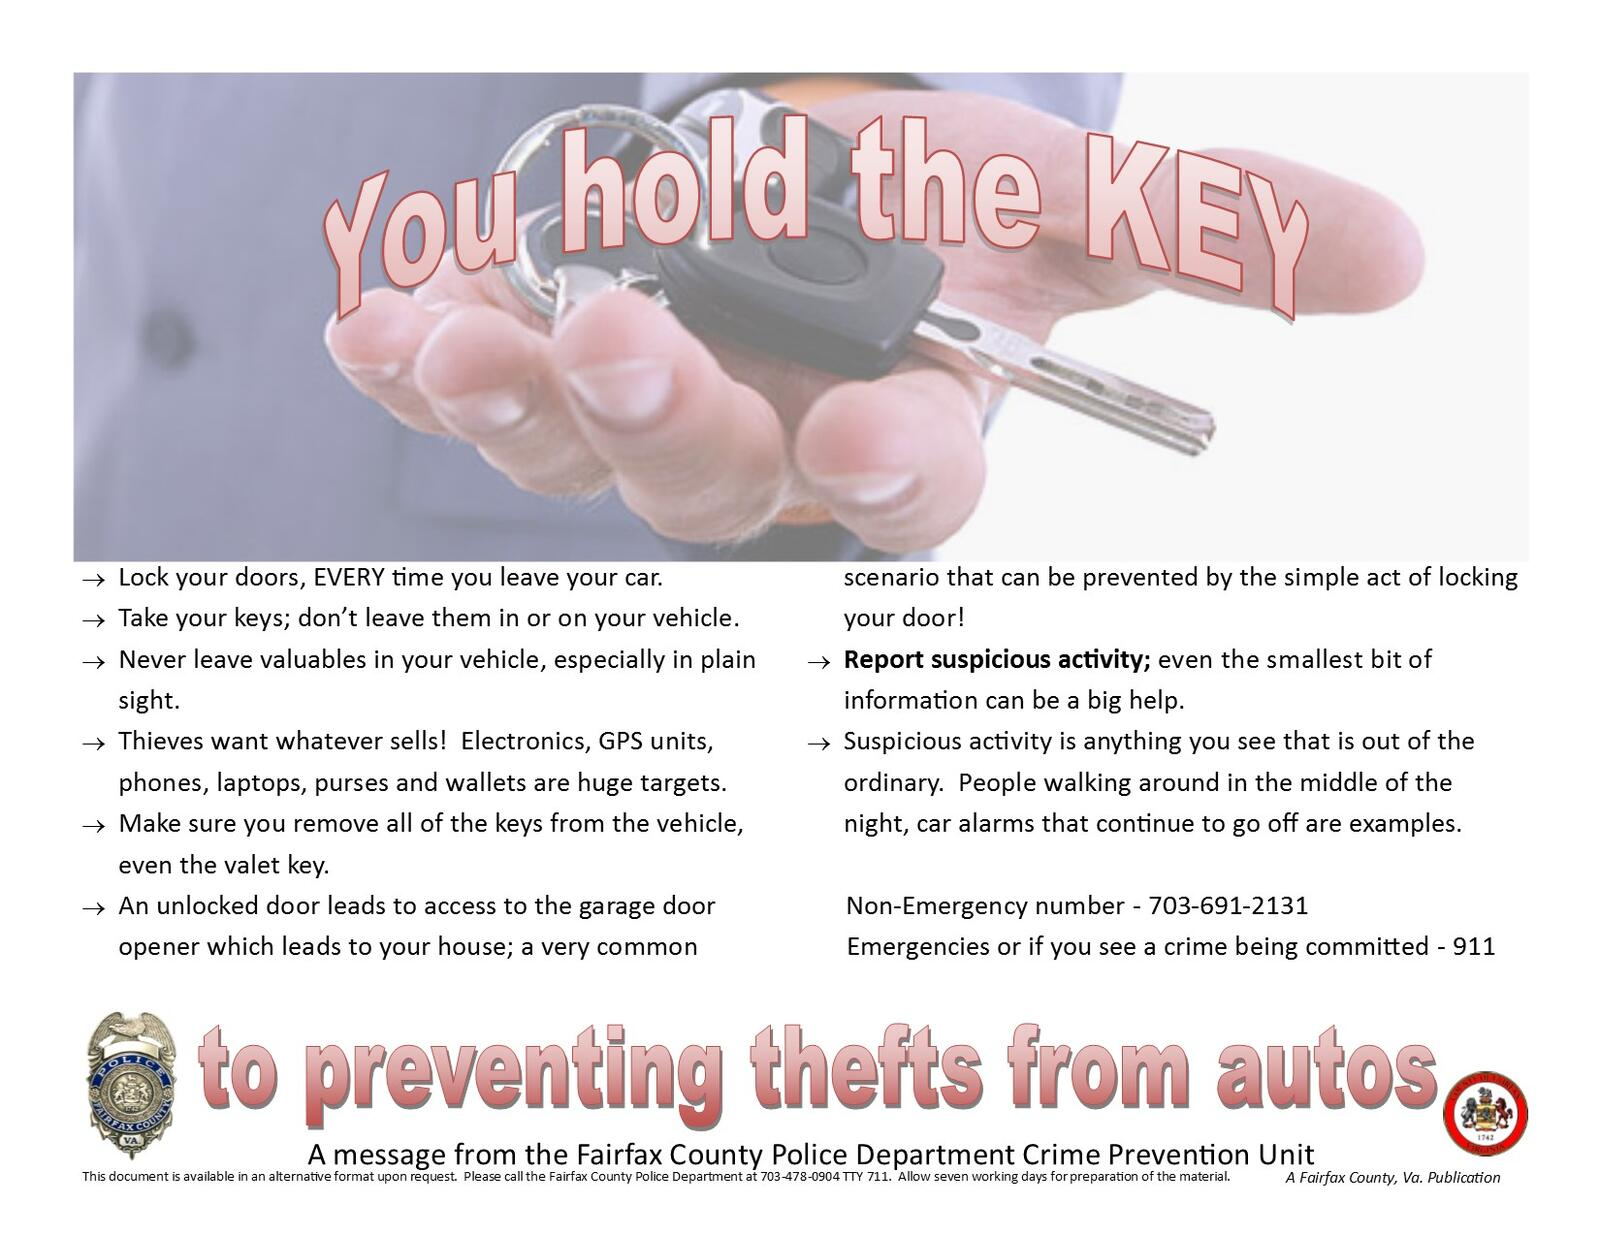 You Hold the Key (Fairfax County Police Department) &mdash